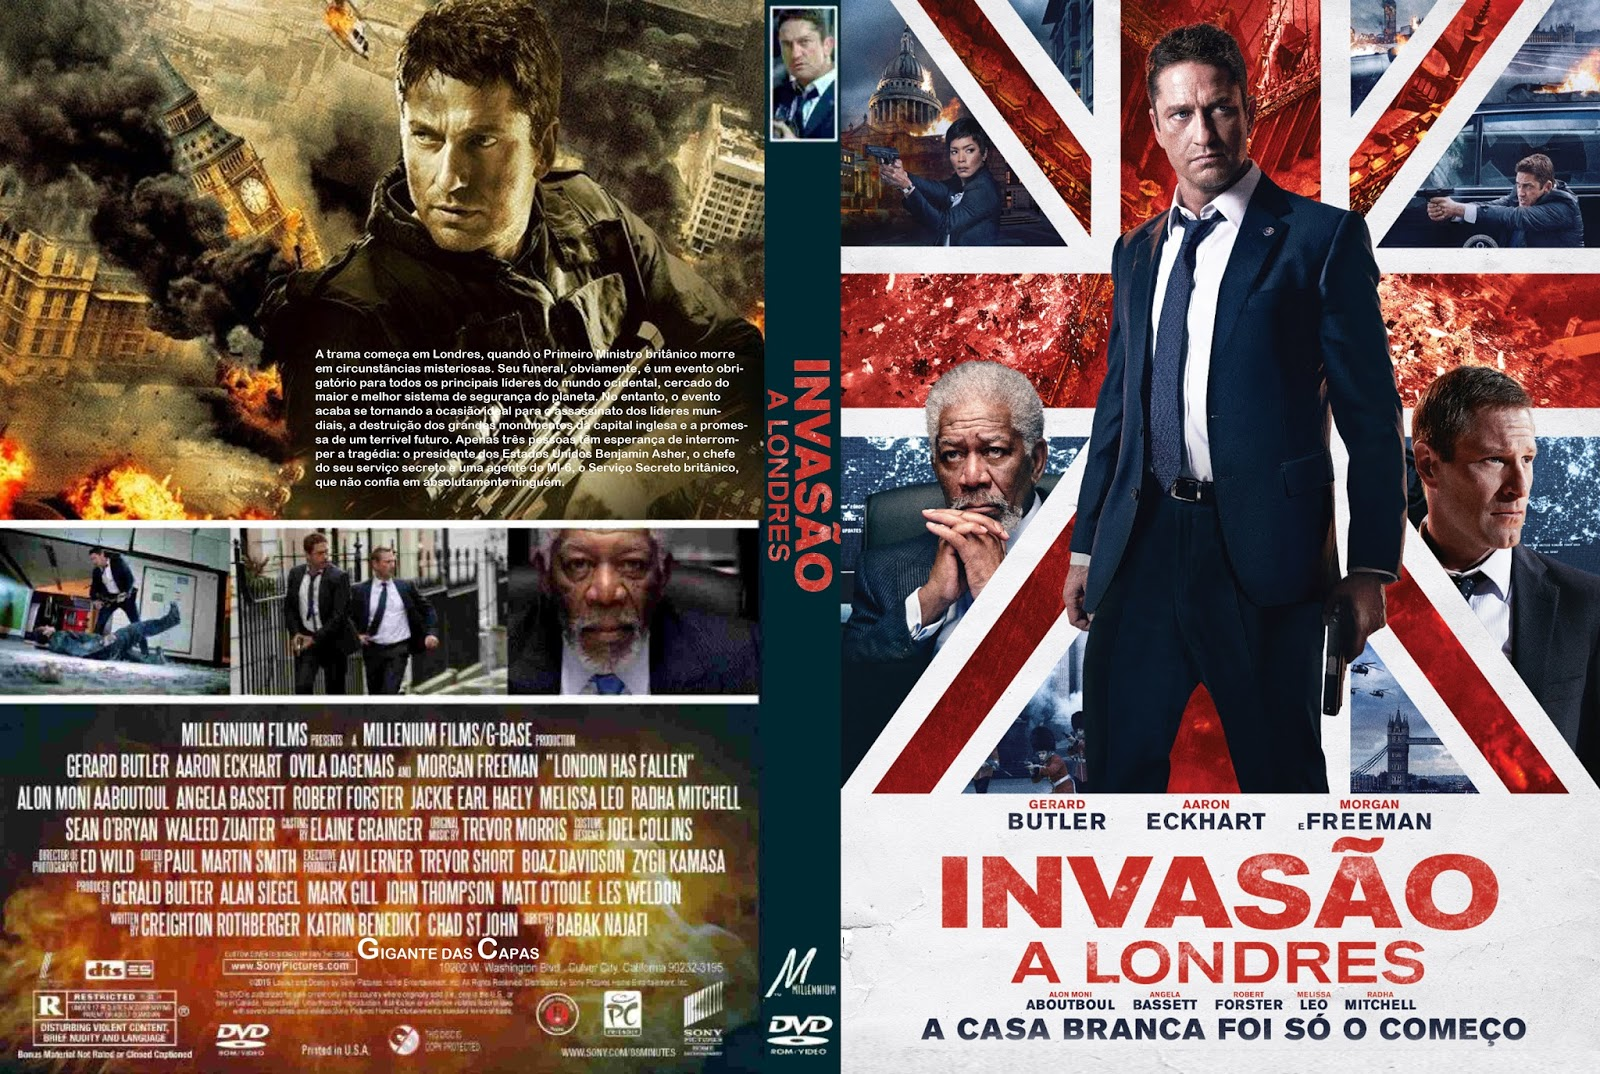 Download Invasão a Londres DVD-R Invas 25C3 25A3o 2Ba 2BLondres 2B 25282016 2529